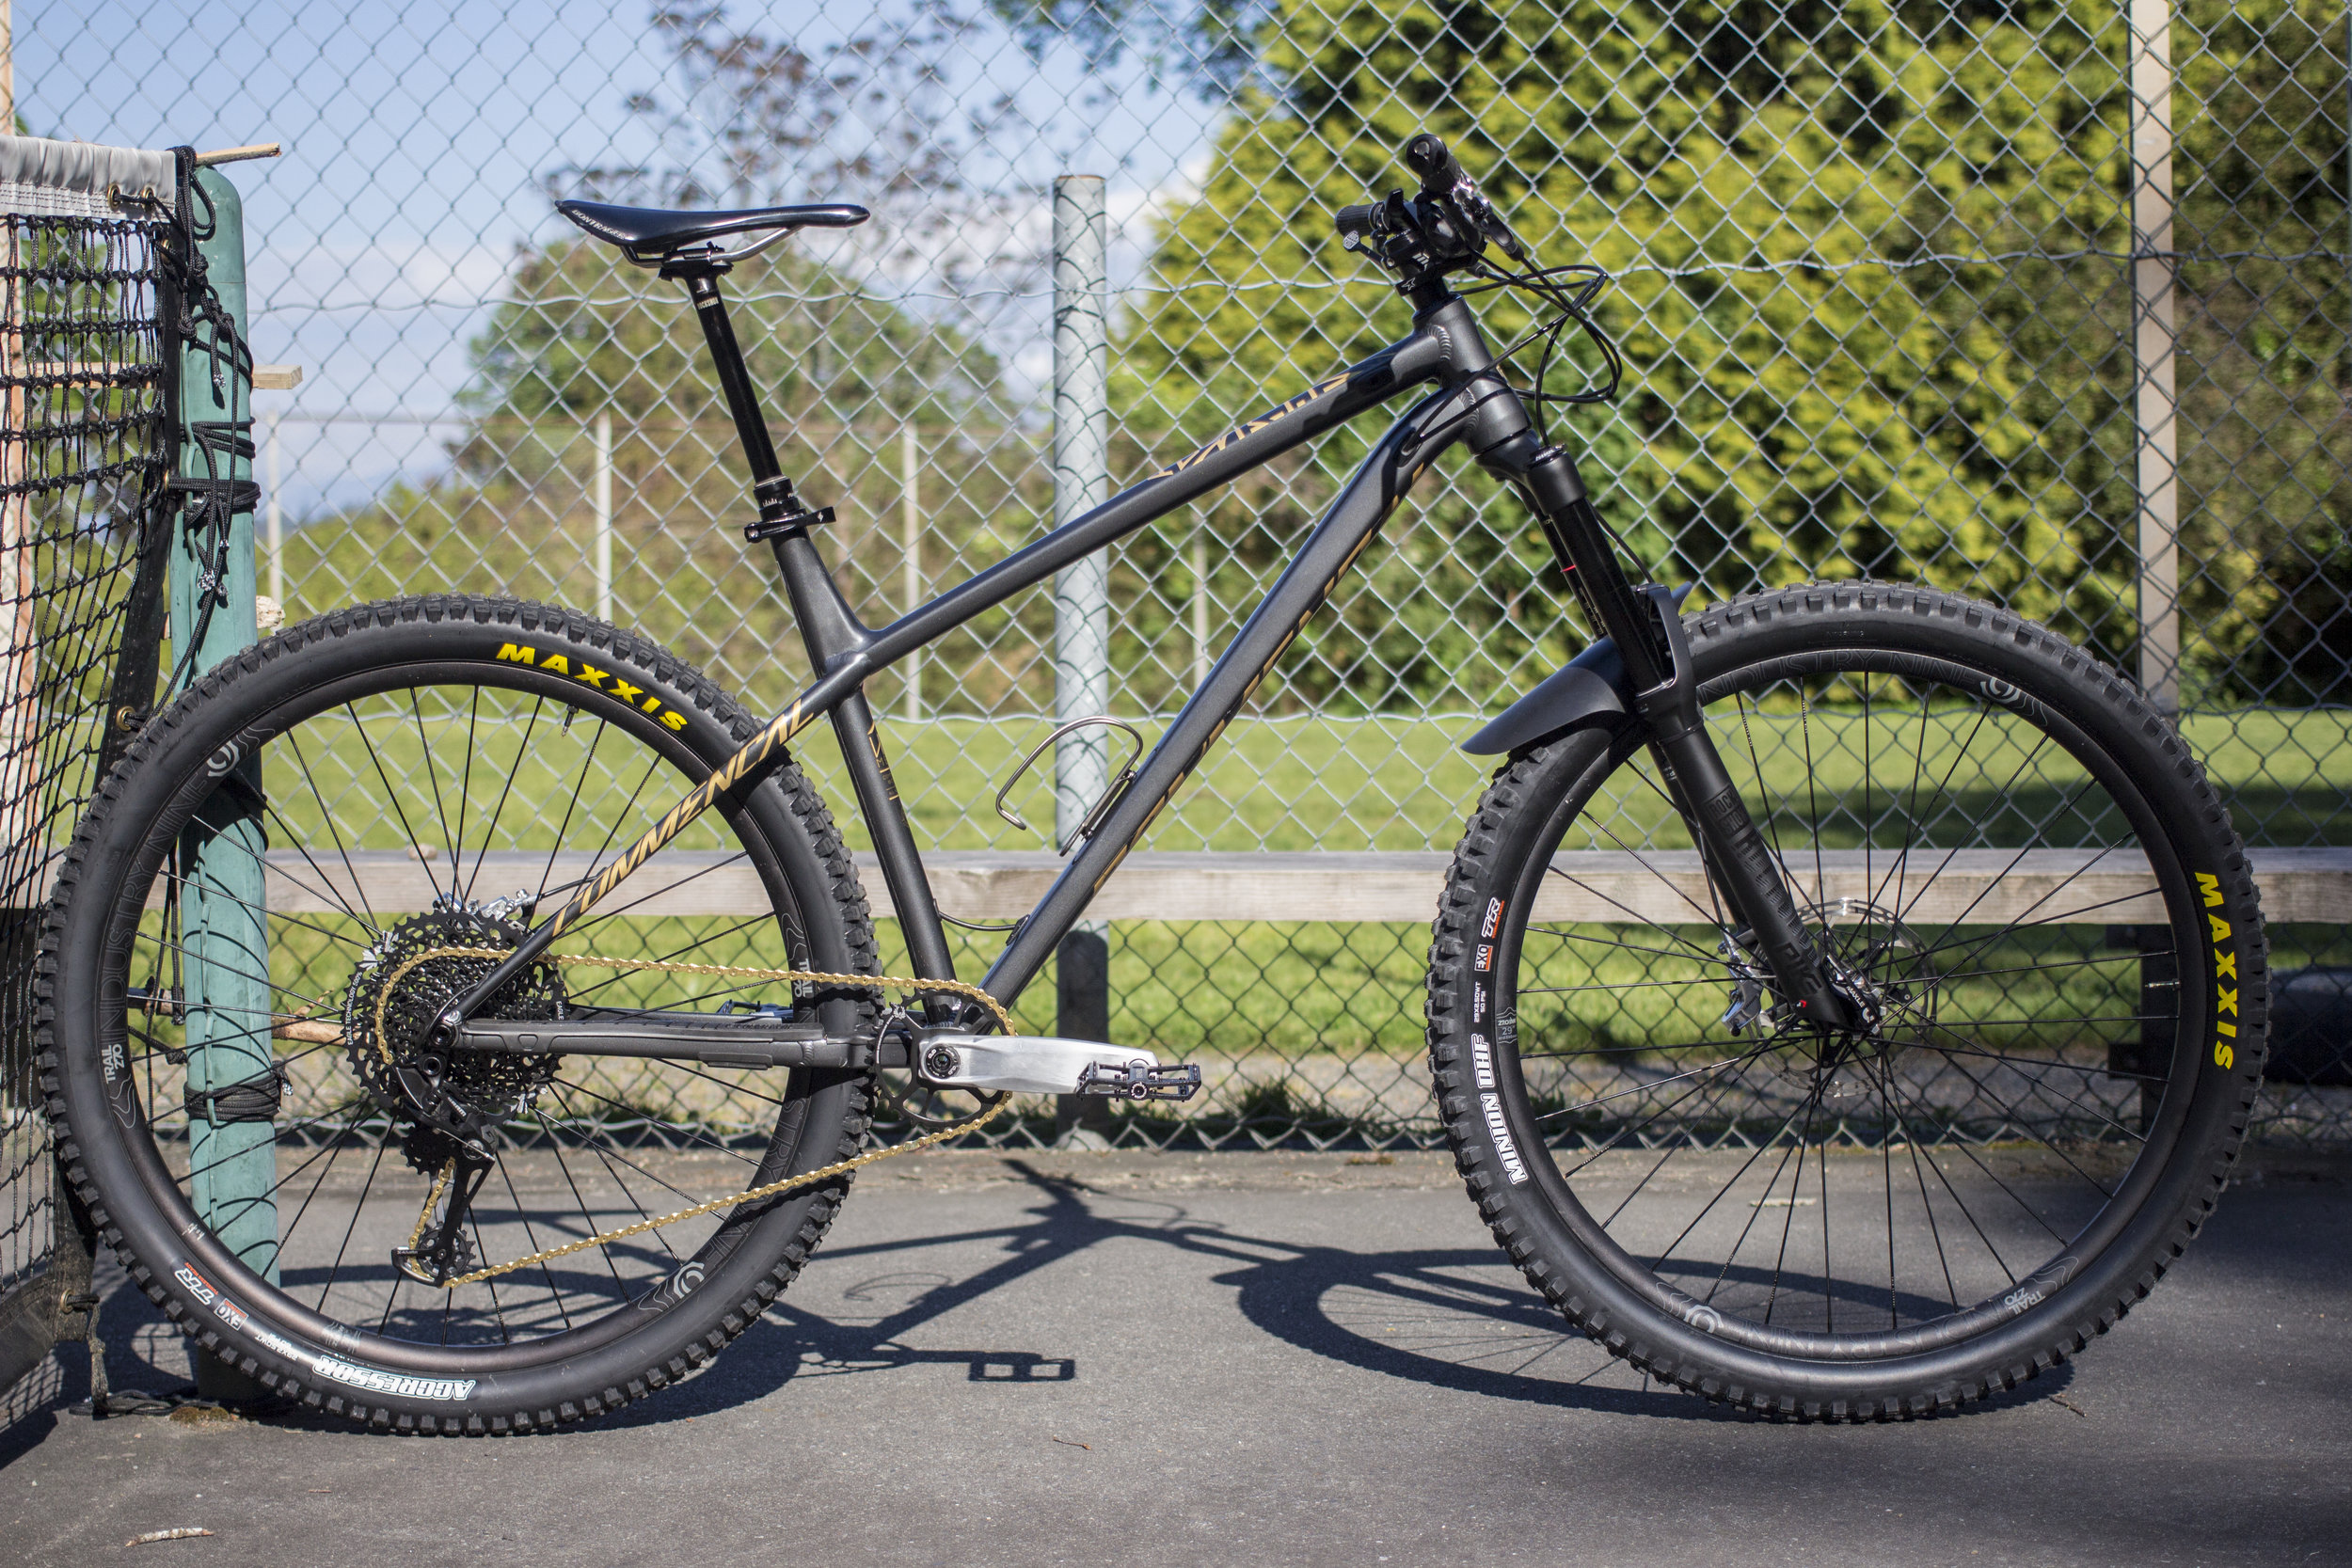 74dc35a3625 Some things will never go out of style once they come in. At the top of  that list for mountain bikes we find: